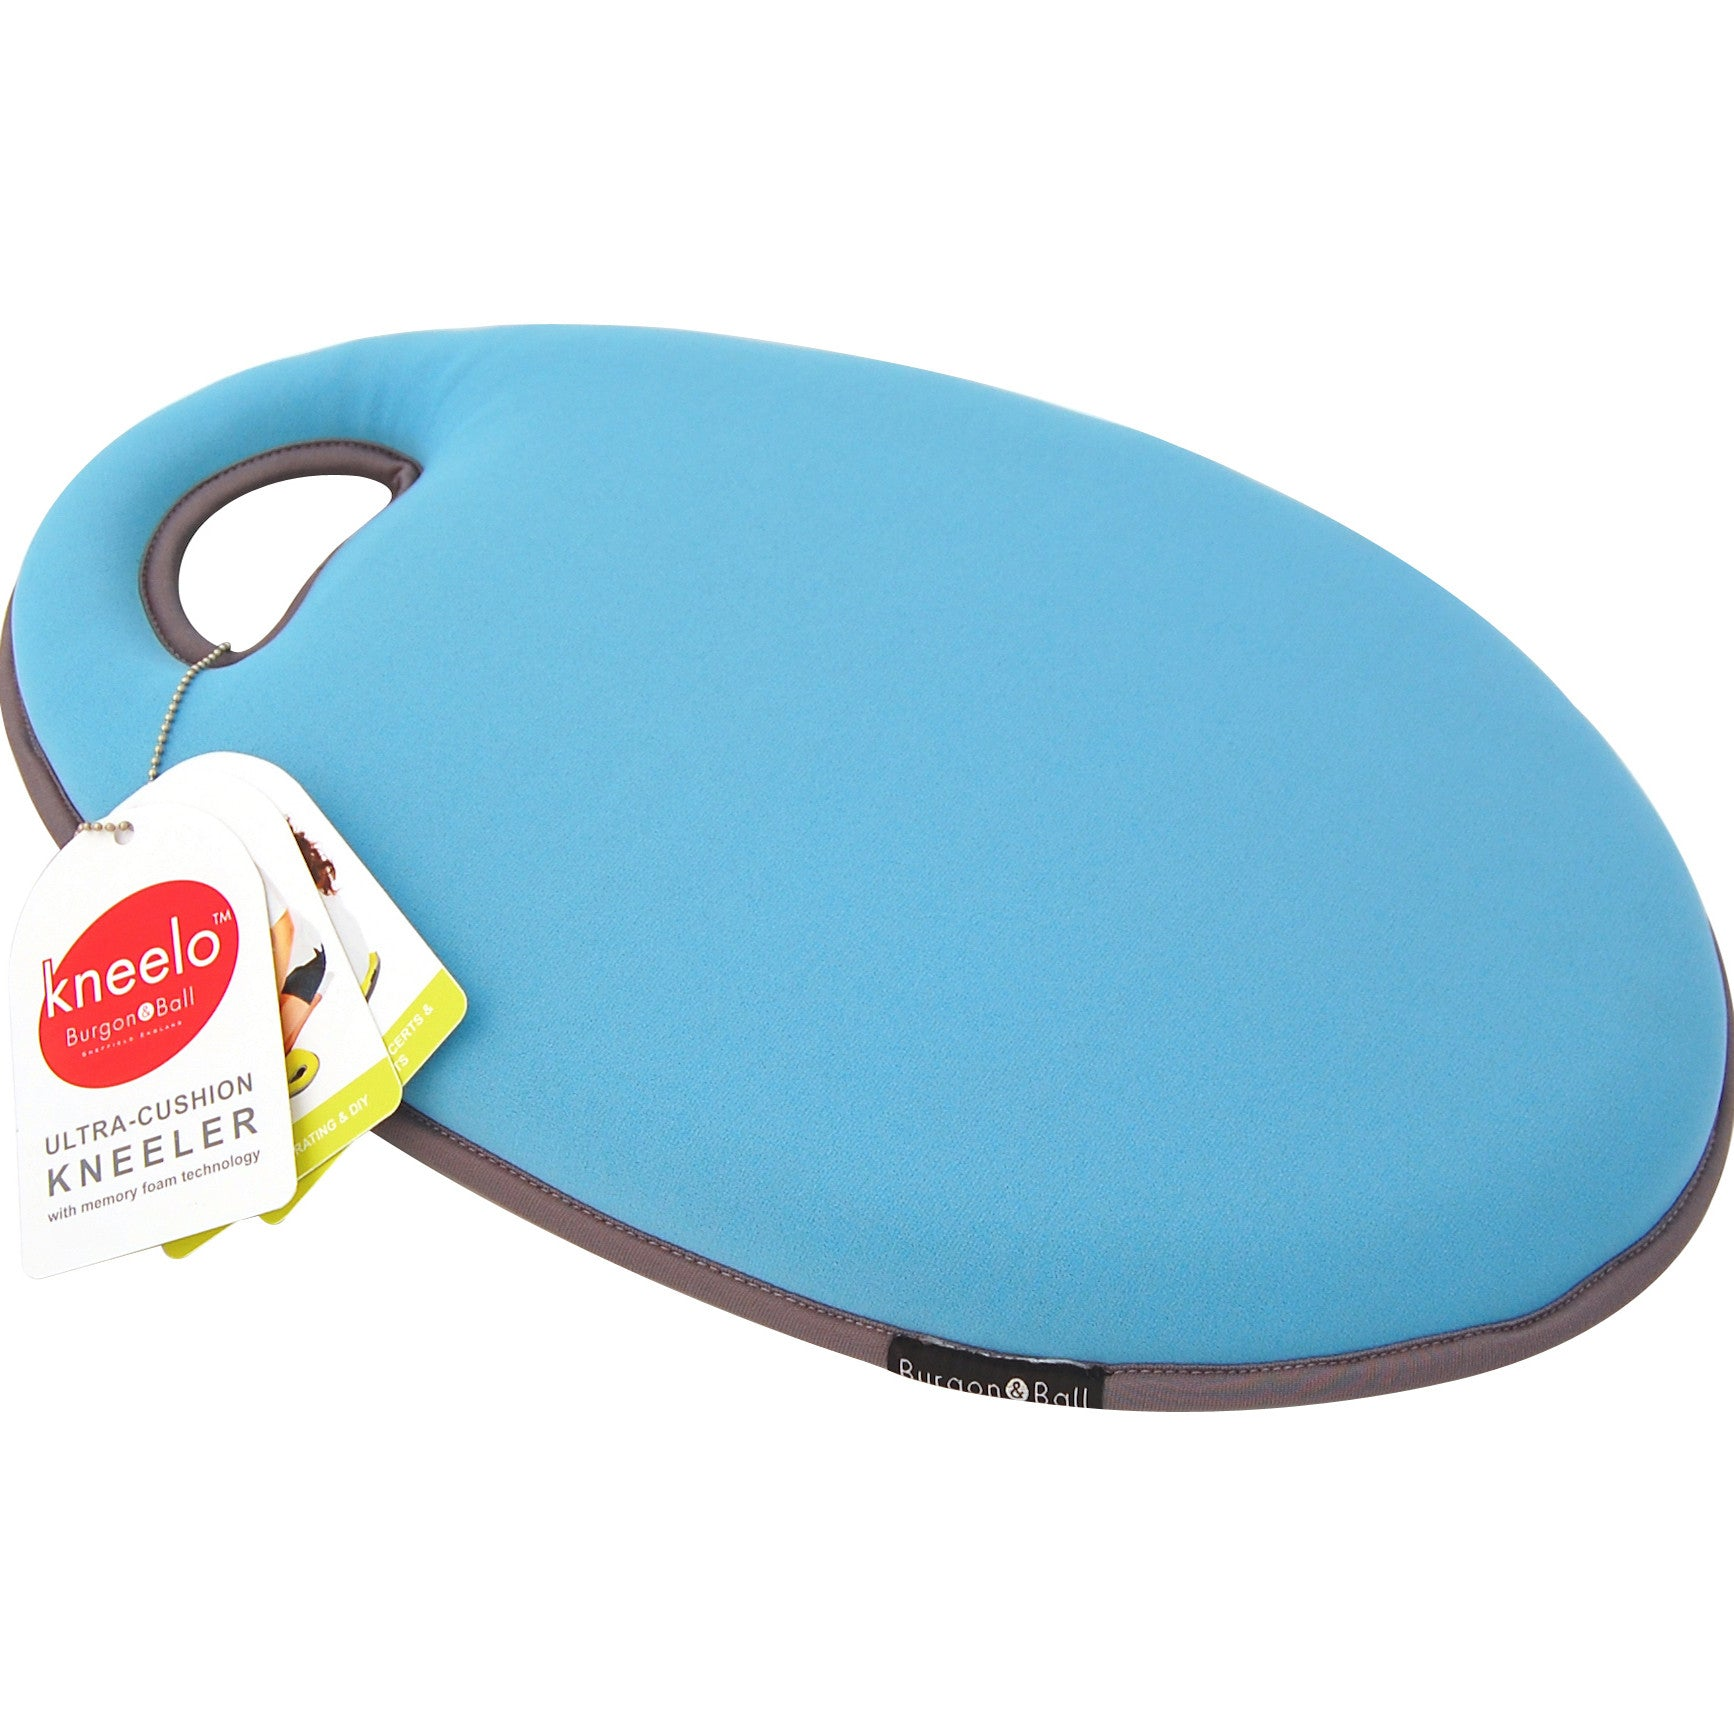 Kneelo® Kneeler - Cornflower - The Potting Shed Garden Tools